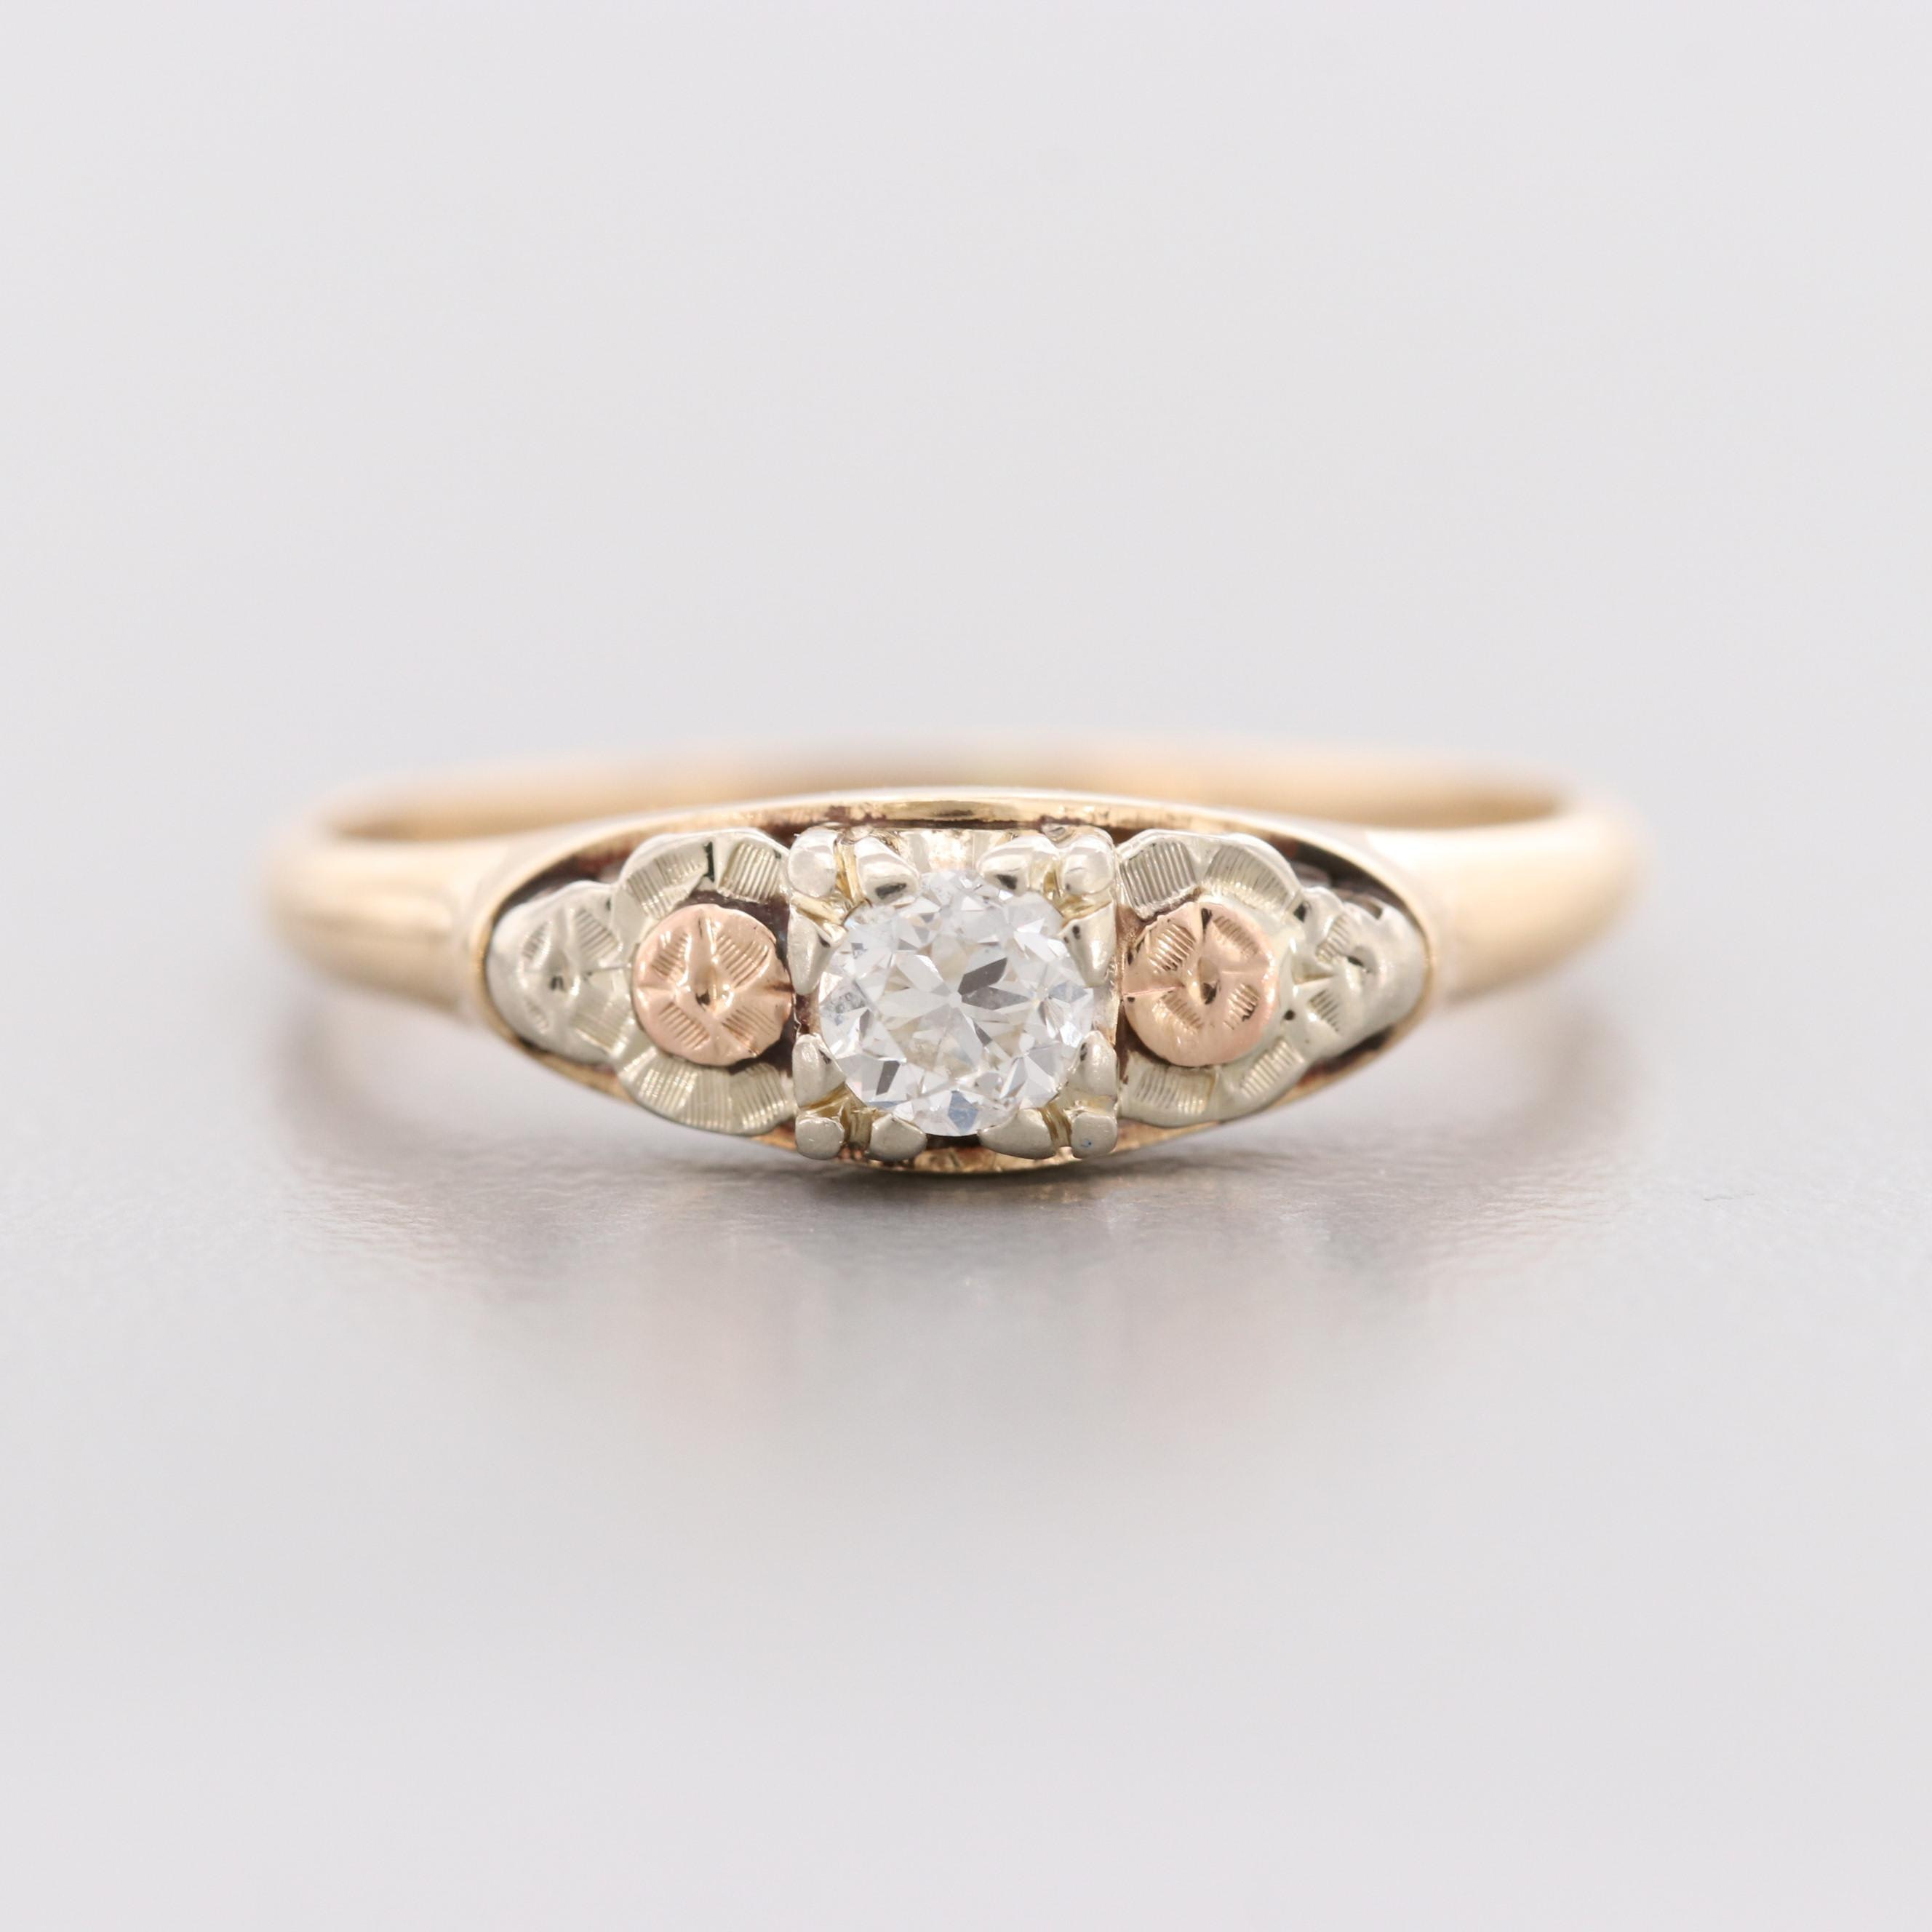 Vintage 1930s 14K Yellow Gold Diamond Floral Ring with Rose Gold Accents